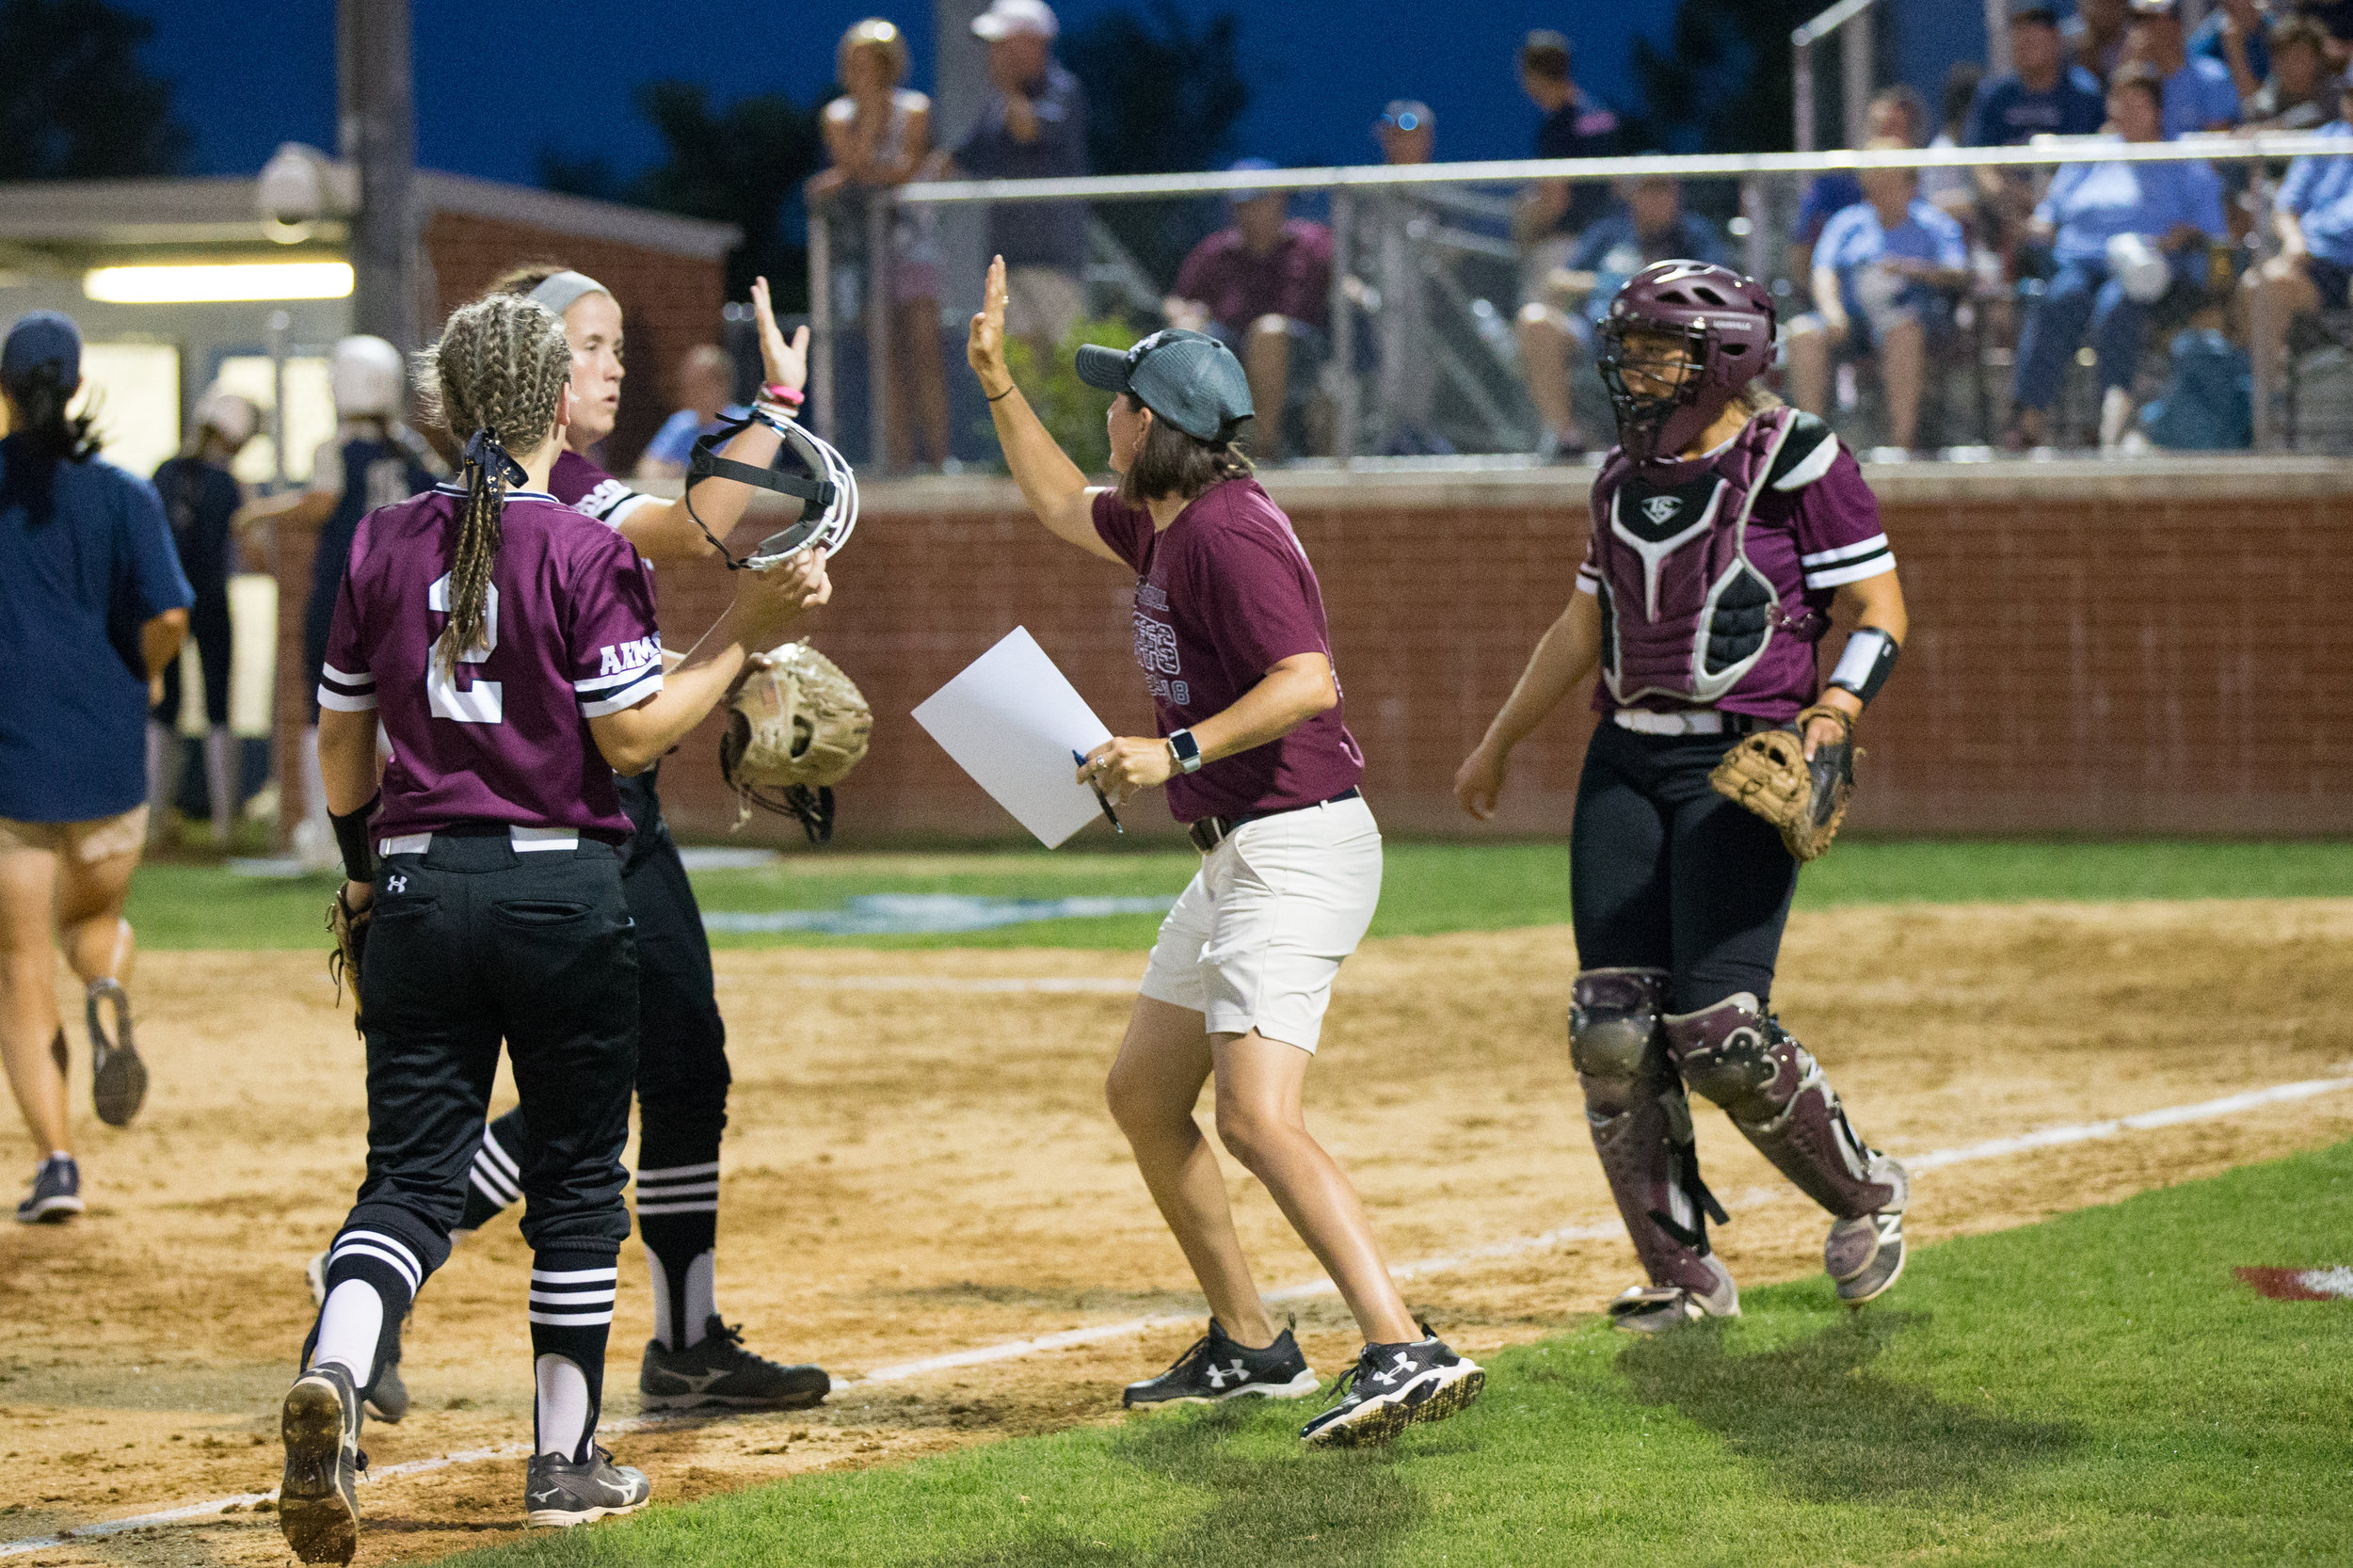 5_18 Wylie Softball-177.jpg